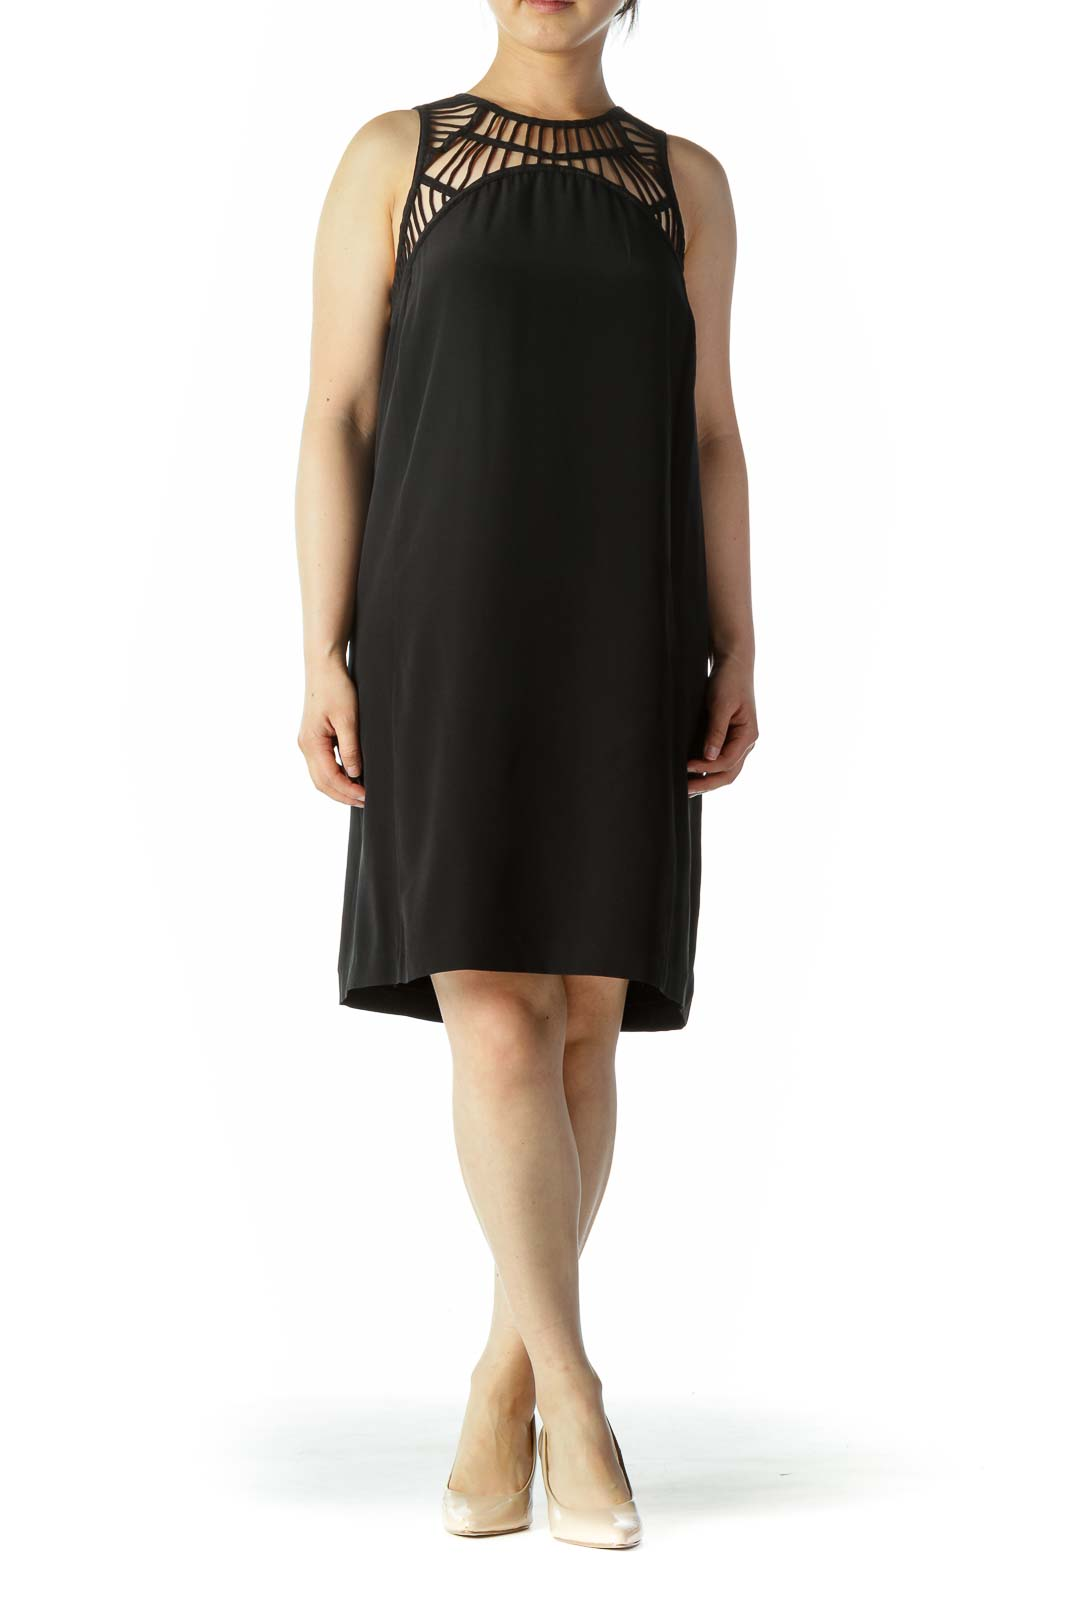 Black Knit Neckline Design Shift Day Dress